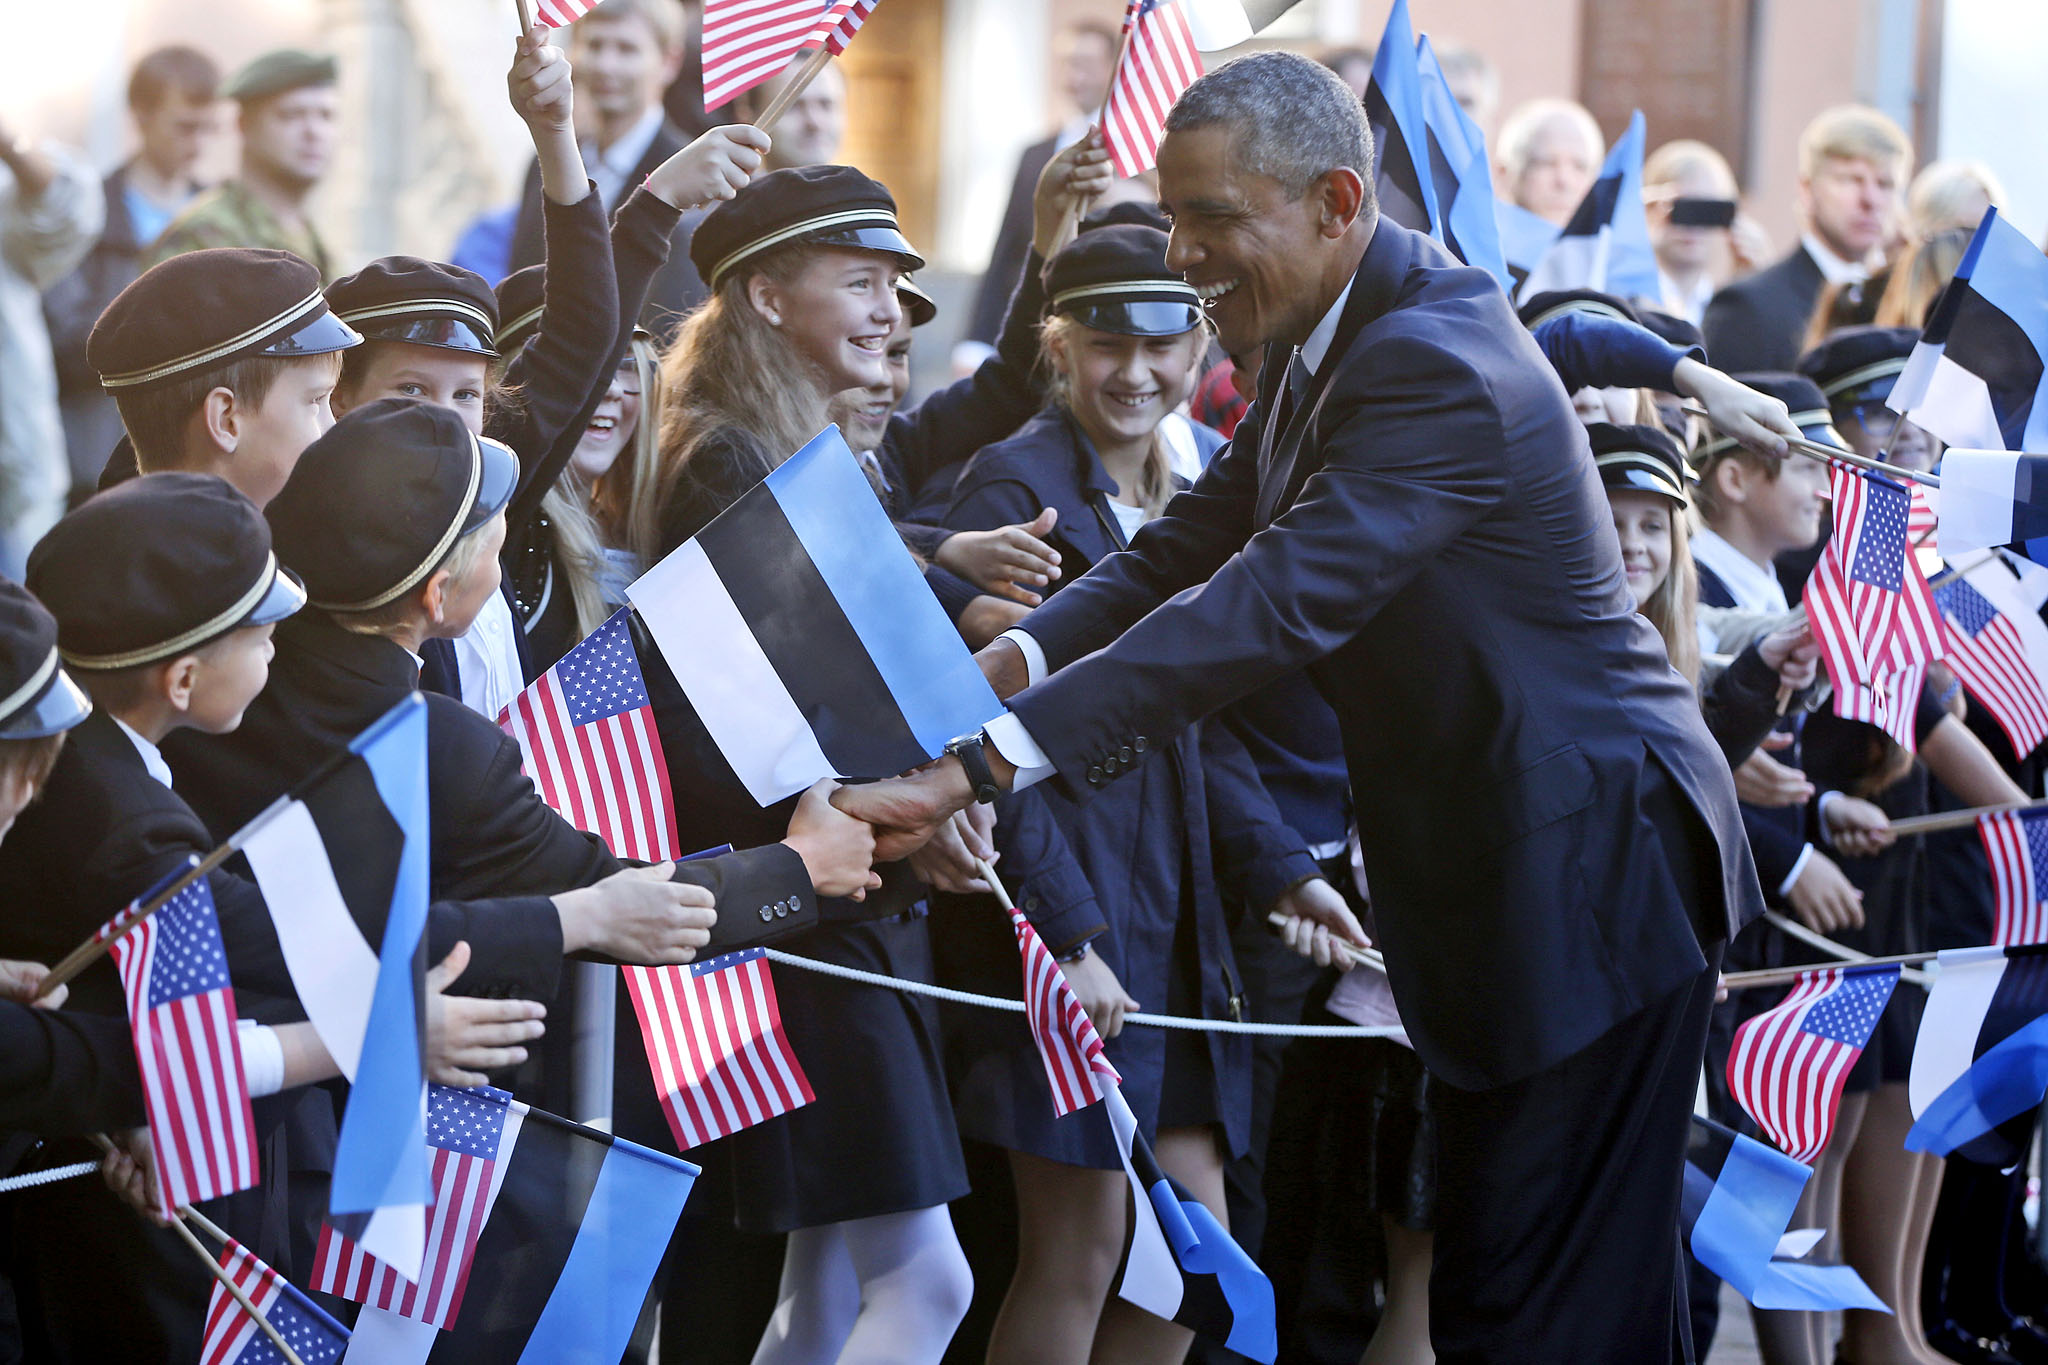 Barack Obama...U.S. President Barack Obama greets children as he is welcomed by Estonian President Toomas Hendrik Ilves at Kadriorg Palace in Tallinn, Estonia, Wednesday, Sept. 3, 2014. Obama is in Estonia for a one day visit where he will meet with Baltic State leaders before heading to the NATO Summit in Wales. (AP Photo/Charles Dharapak)